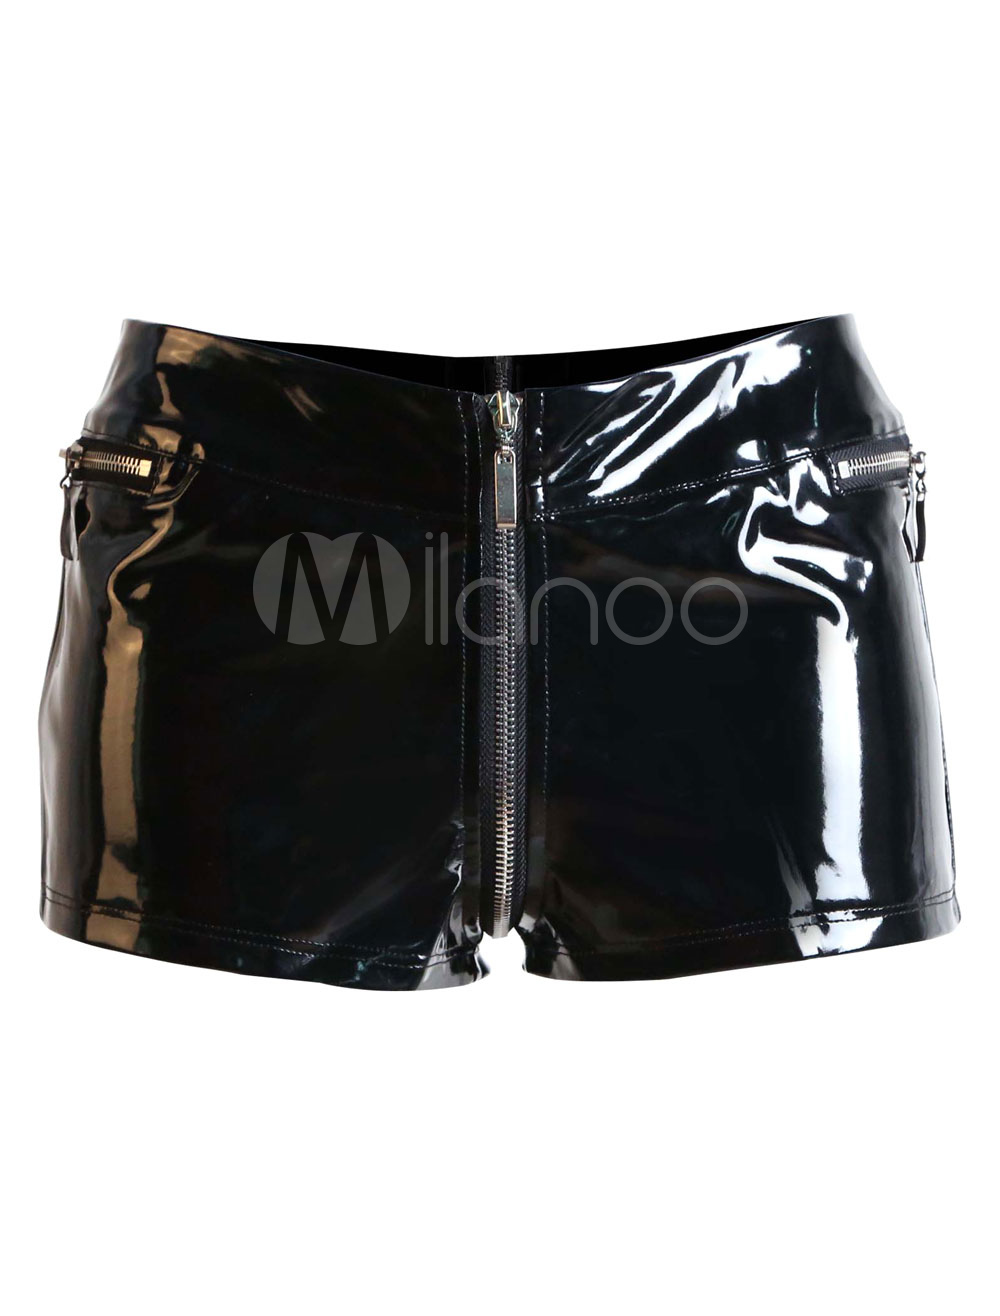 Black Skinny PVC Clubwear Shorts for Women Cheap clothes, free shipping worldwide